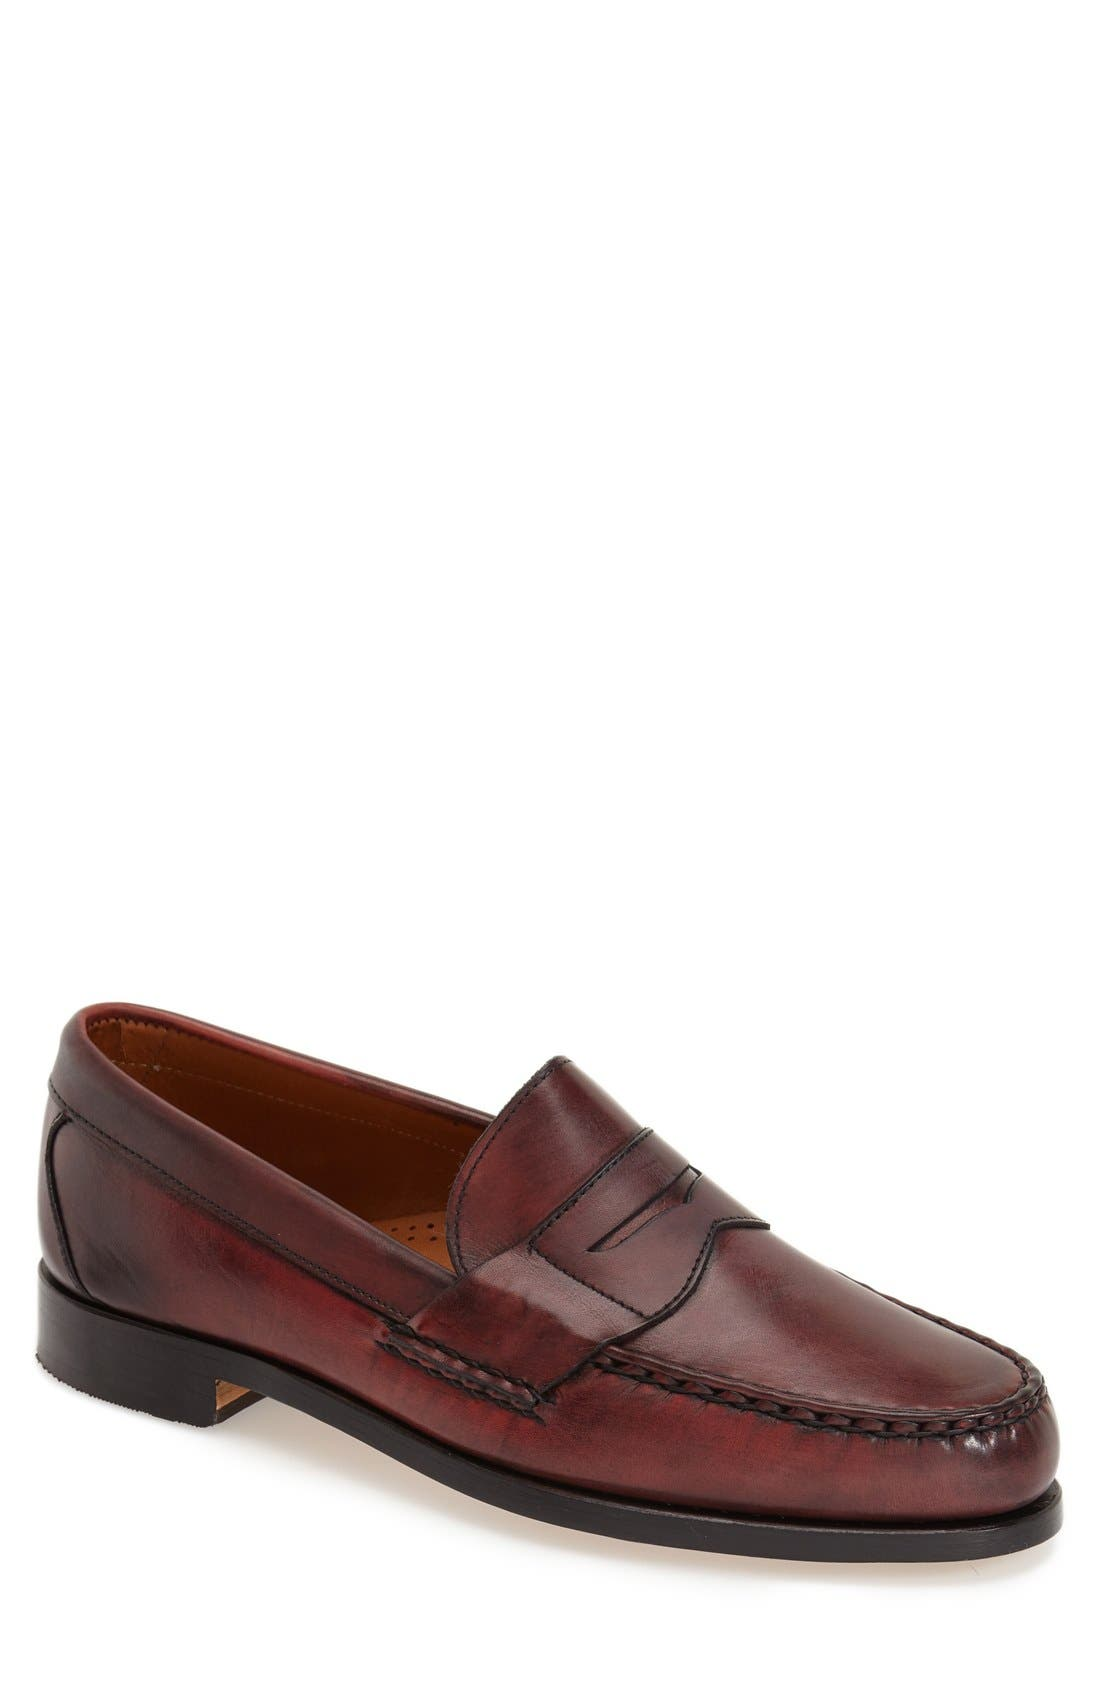 Alternate Image 1 Selected - Allen Edmonds 'Cavanaugh' Penny Loafer (Men)